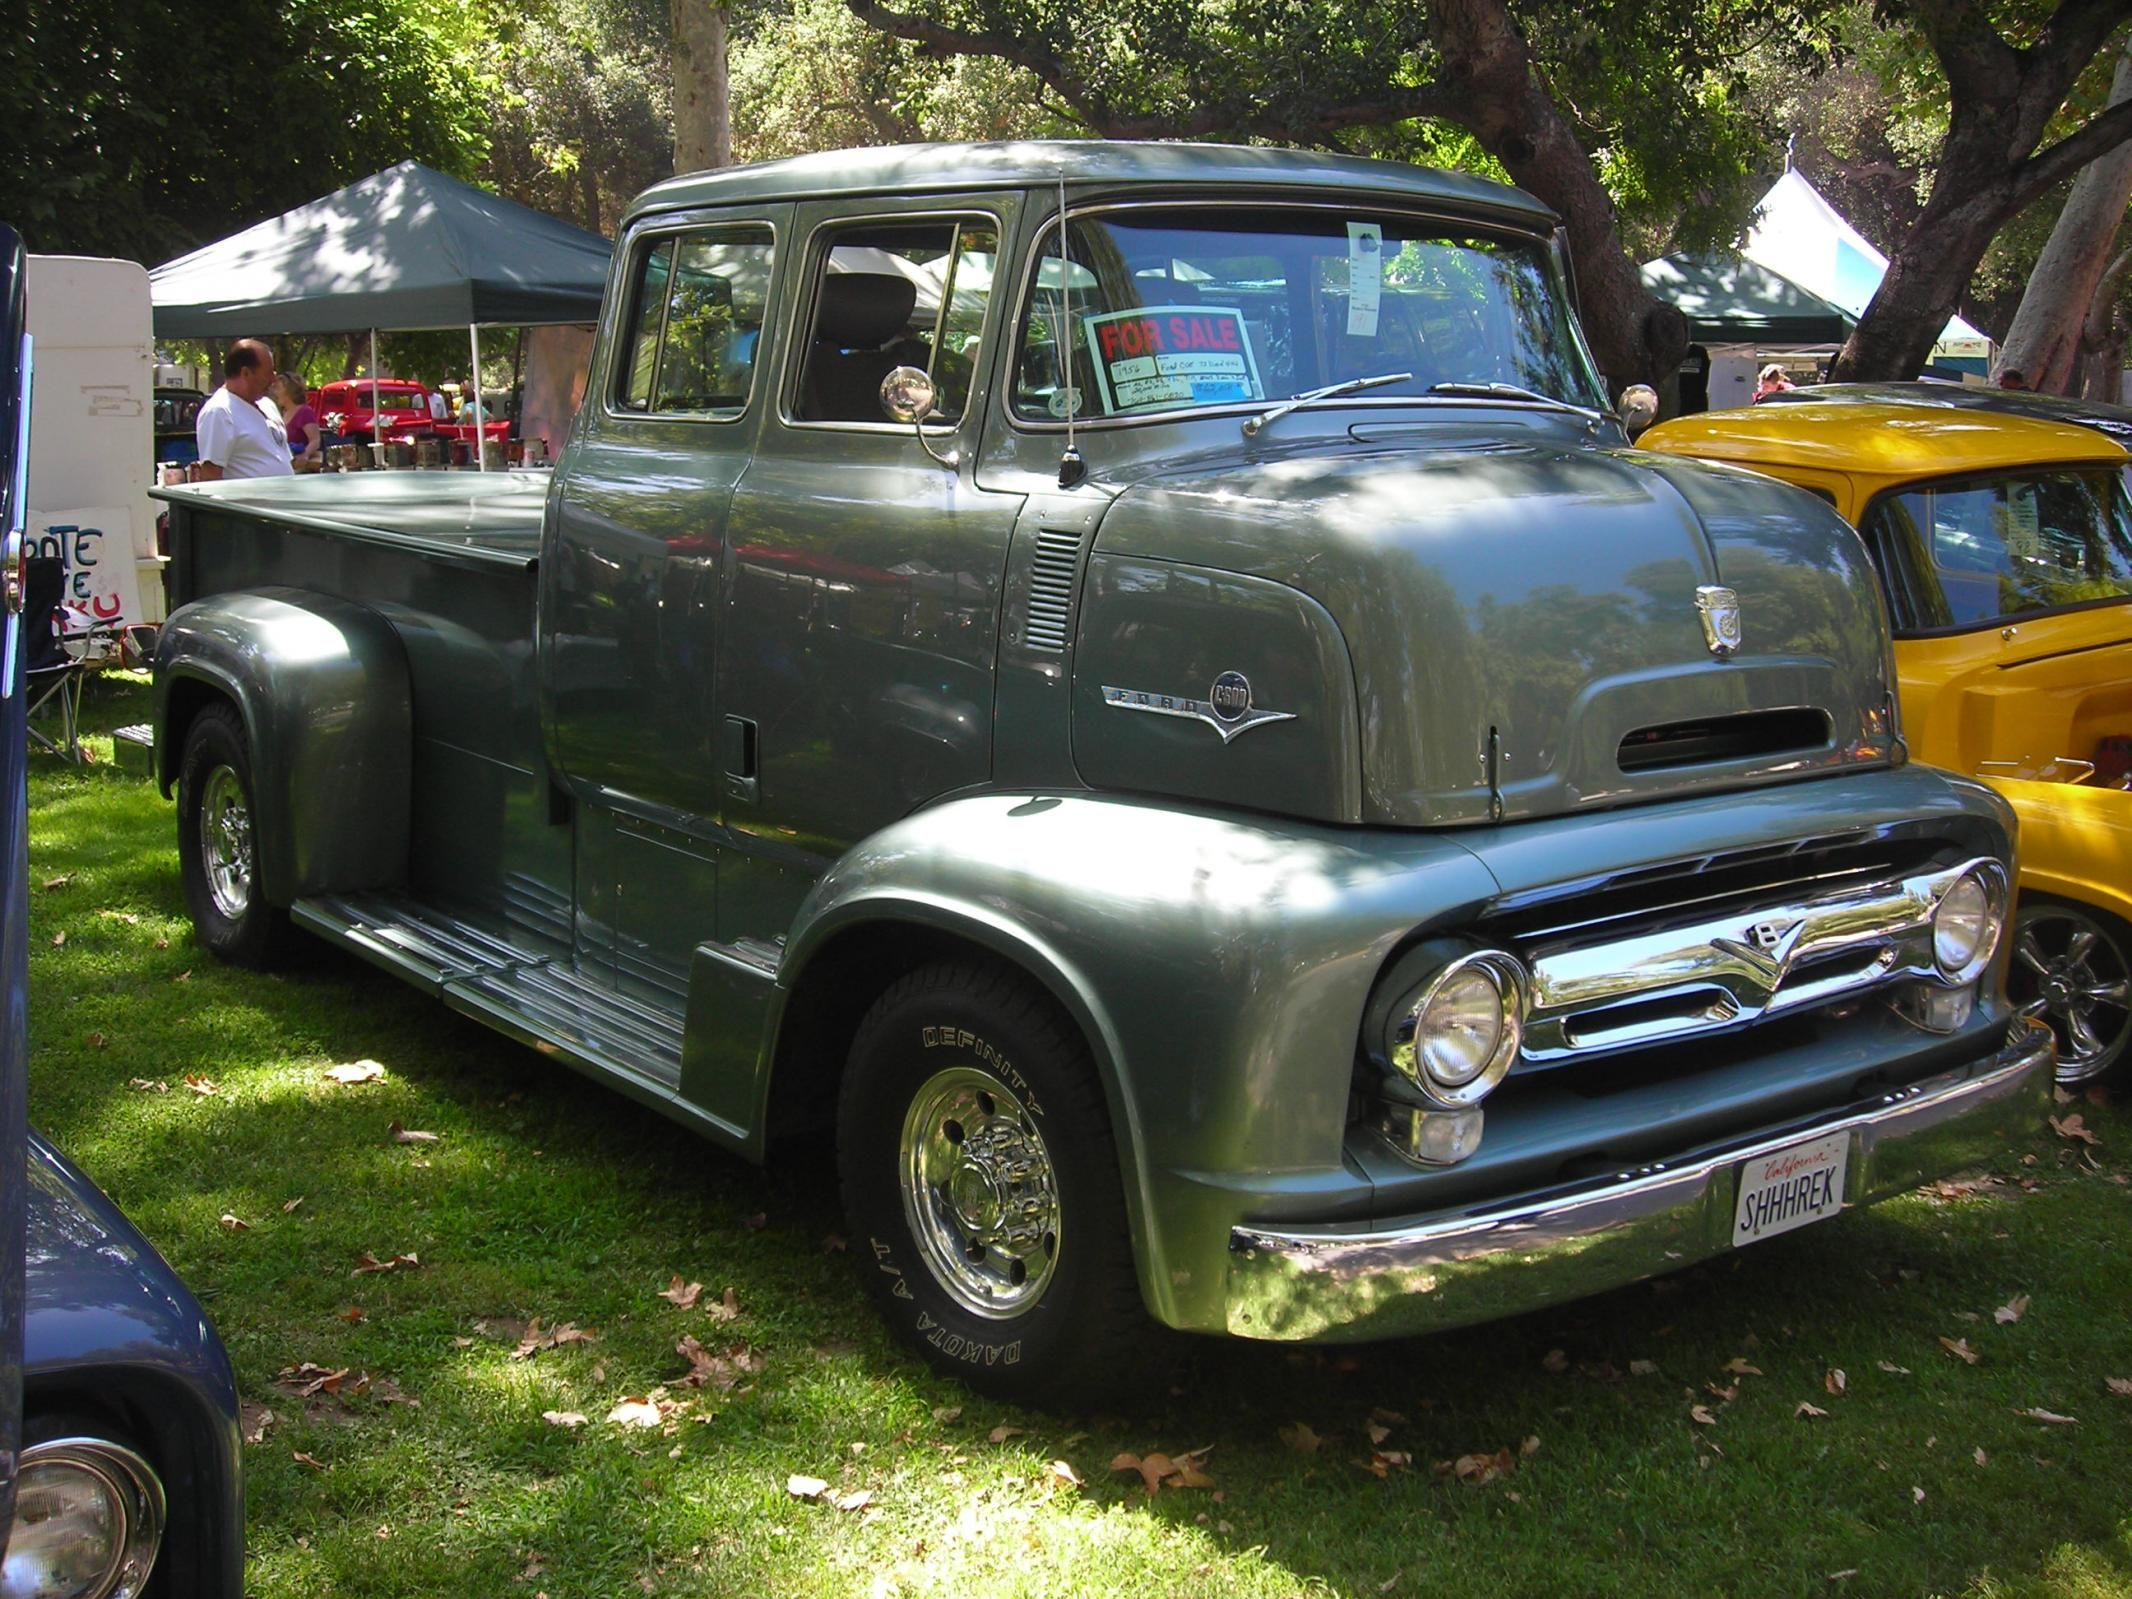 1956 Ford crew cab COE Maintenance of old vehicles: the material for new cogs/casters/gears could be cast polyamide which I (Cast polyamide) can produce